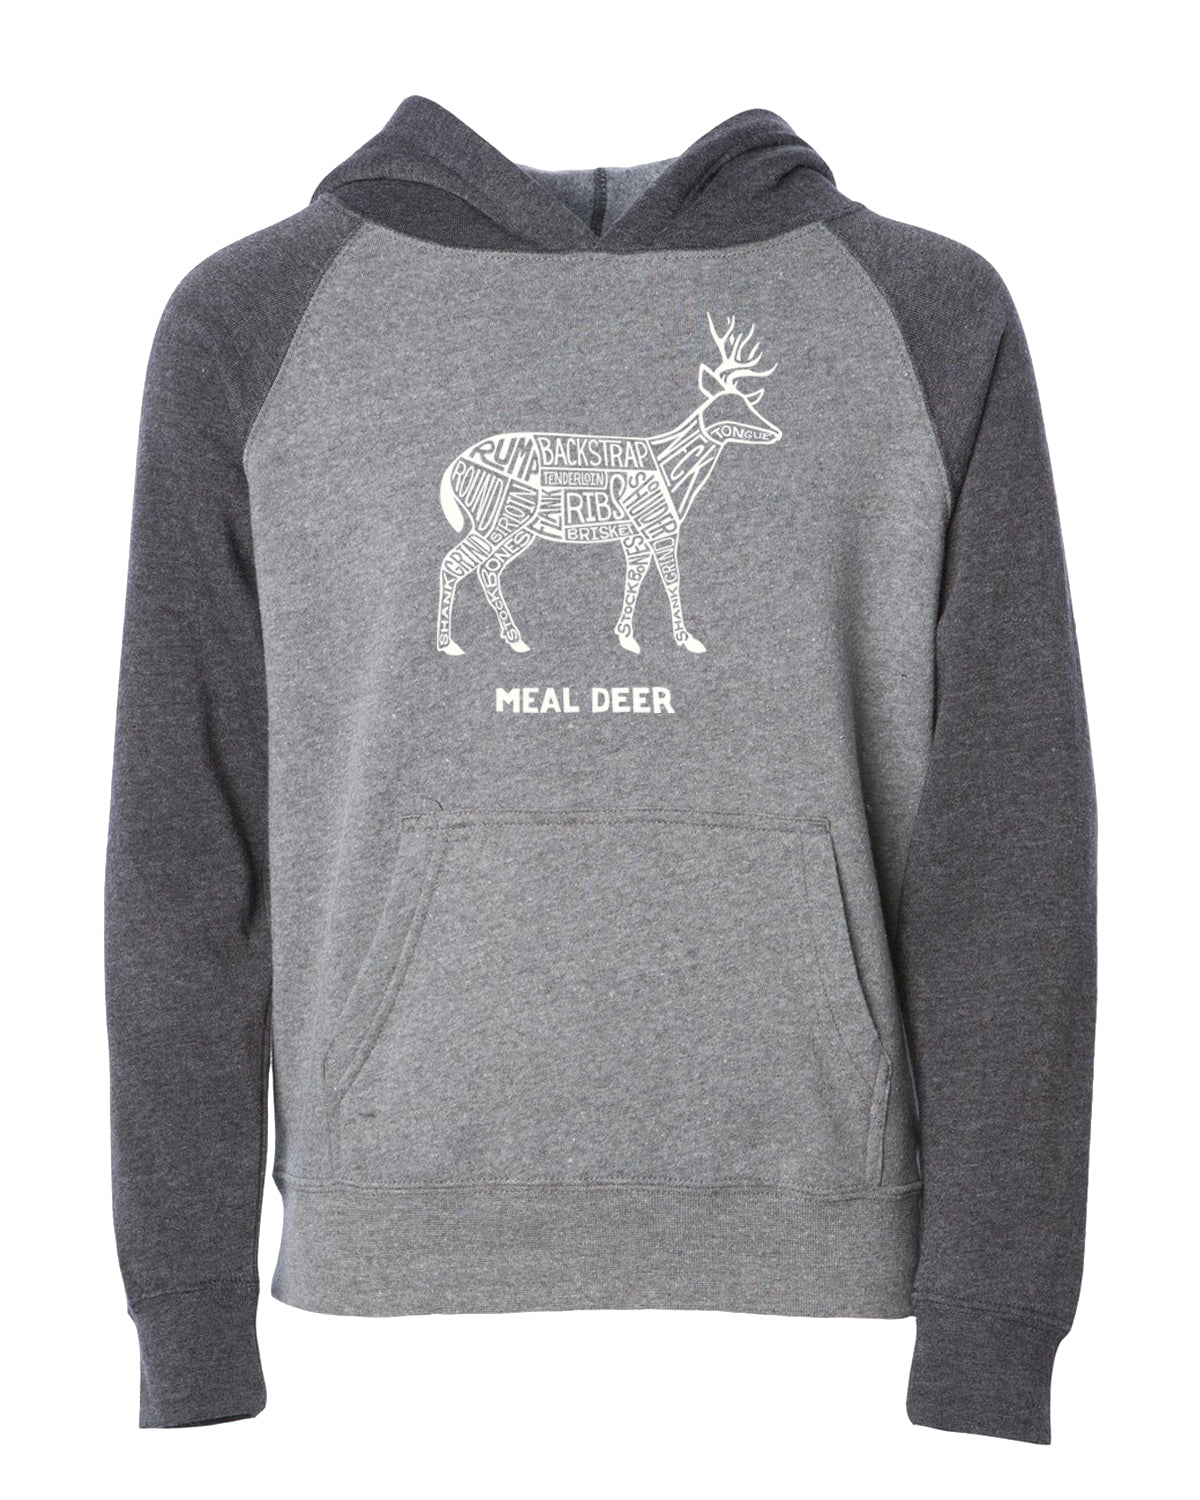 be7b62c47bf5 Kids  Meal Deer Hooded Sweatshirt – Hunt To Eat